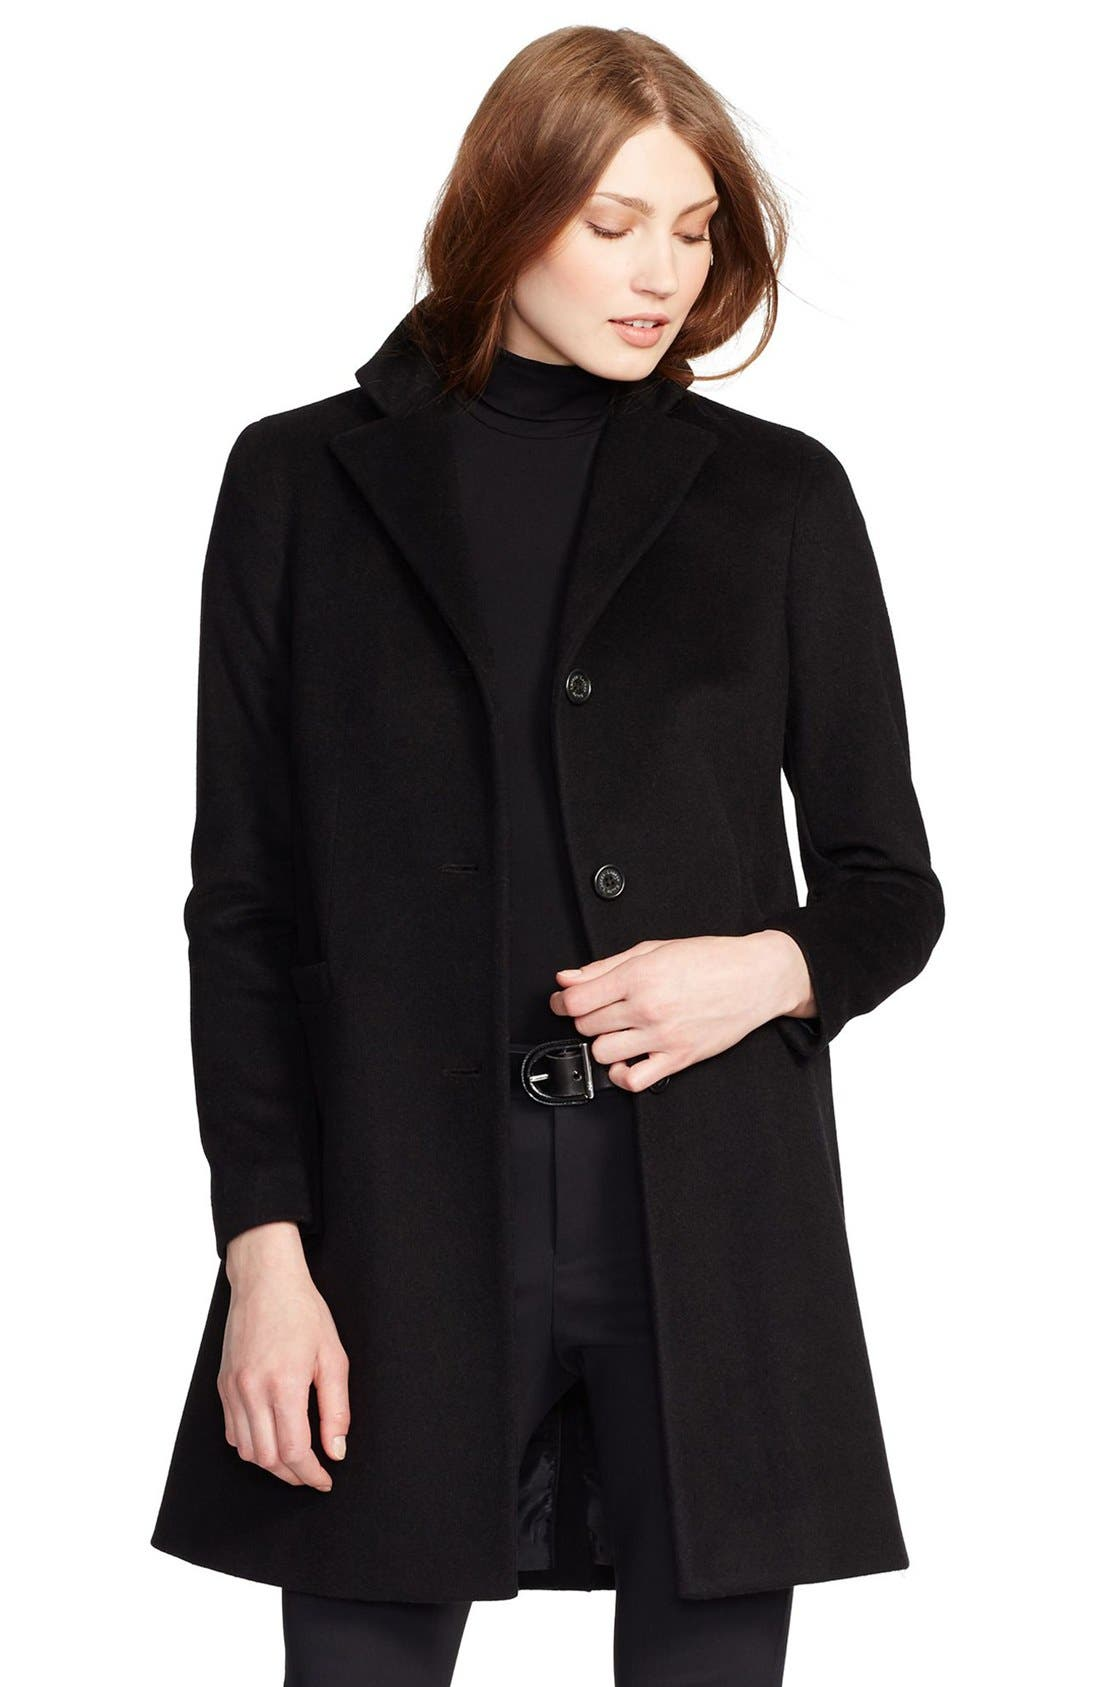 Long black jacket ladies